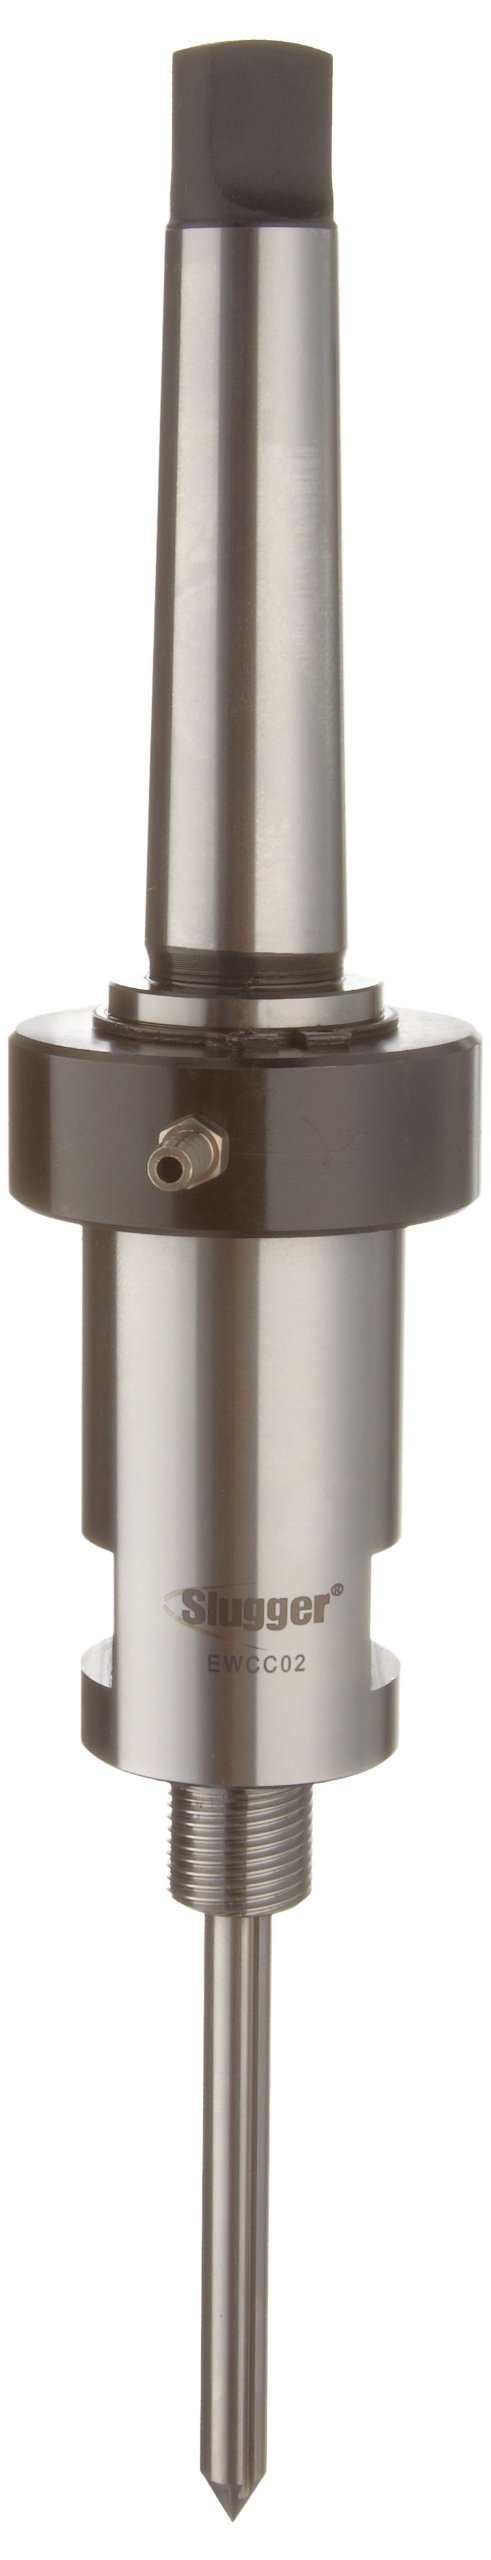 Jancy Slugger EWCC02 3 Morse Taper Industrial Arbor With Coolant Inducer, For M18 X 1.5 Threaded Bore Slugger Carbide Tipped Cutters